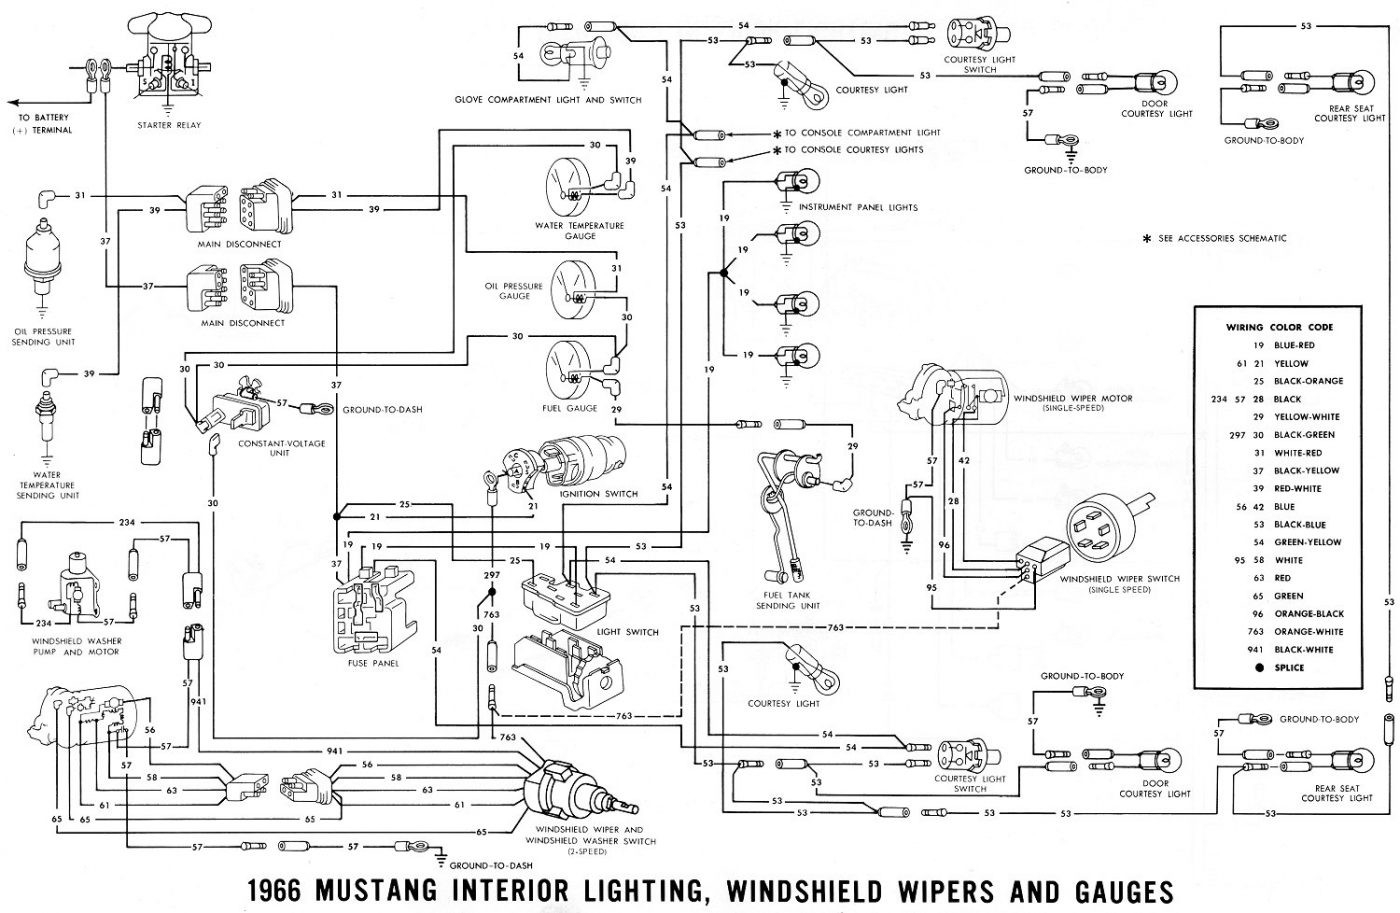 Speaker System Wiring Diagrams On Home Wiring Diagrams With Speaker